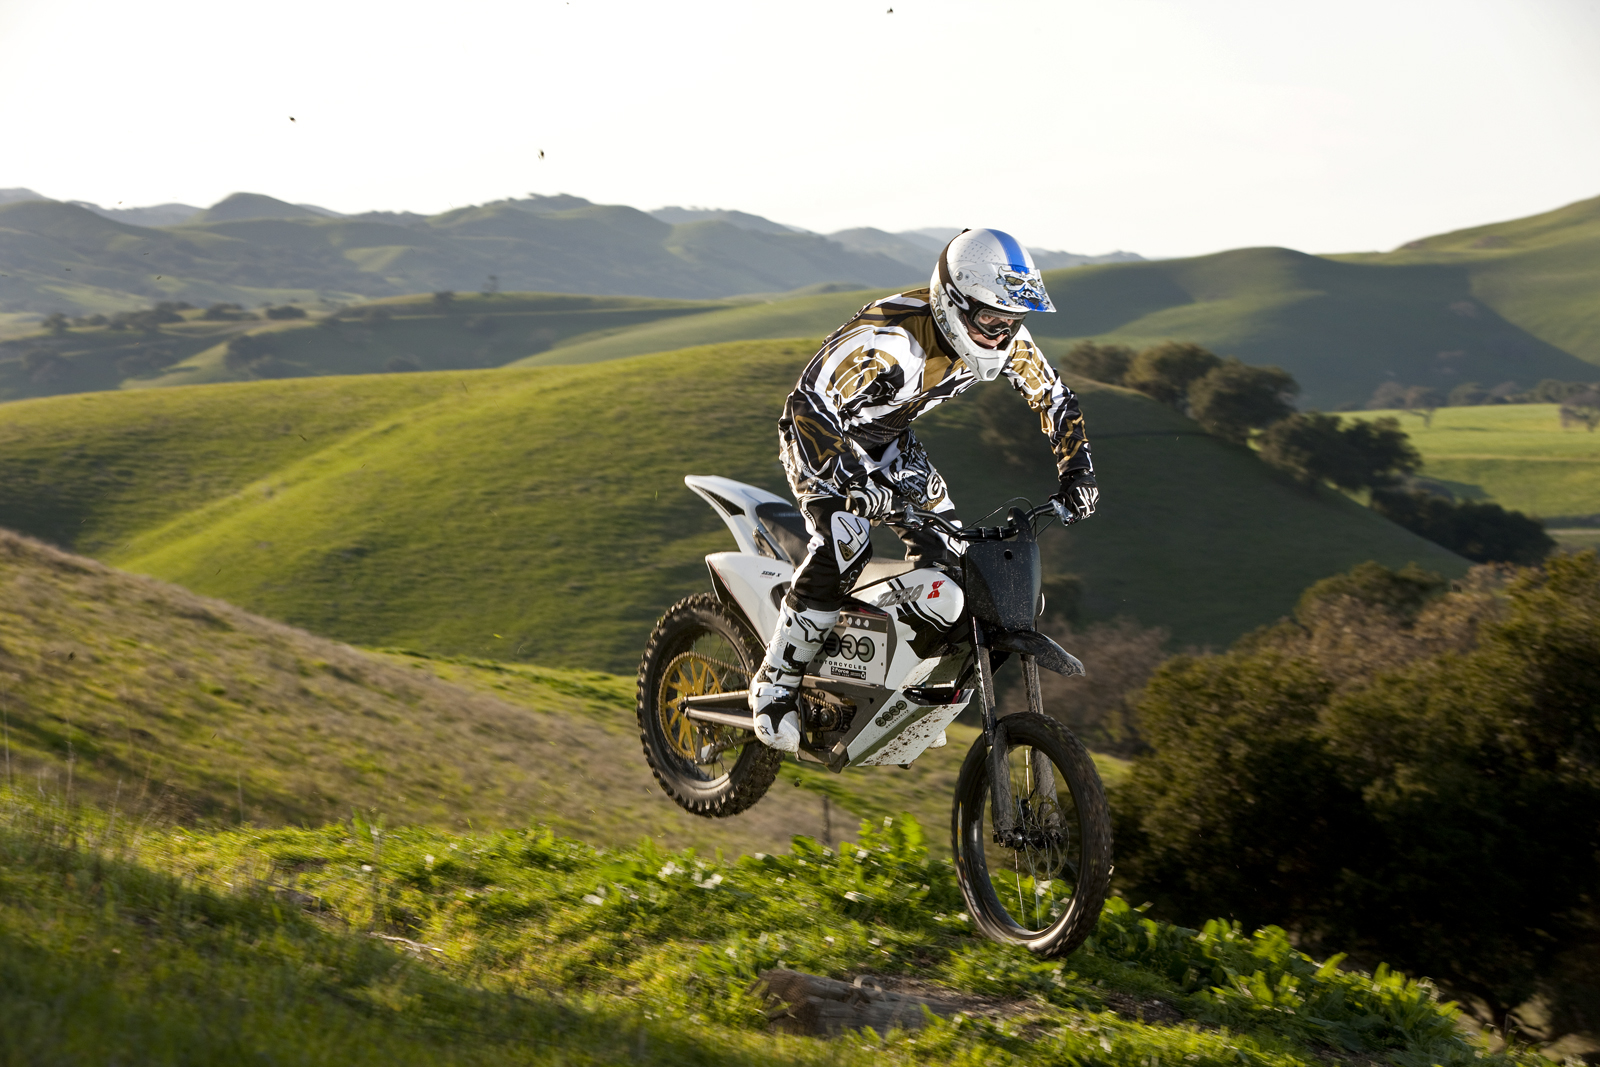 '.2010 Zero X Electric Motorcycle: Zaca Station - Wheelie on Ridge.'